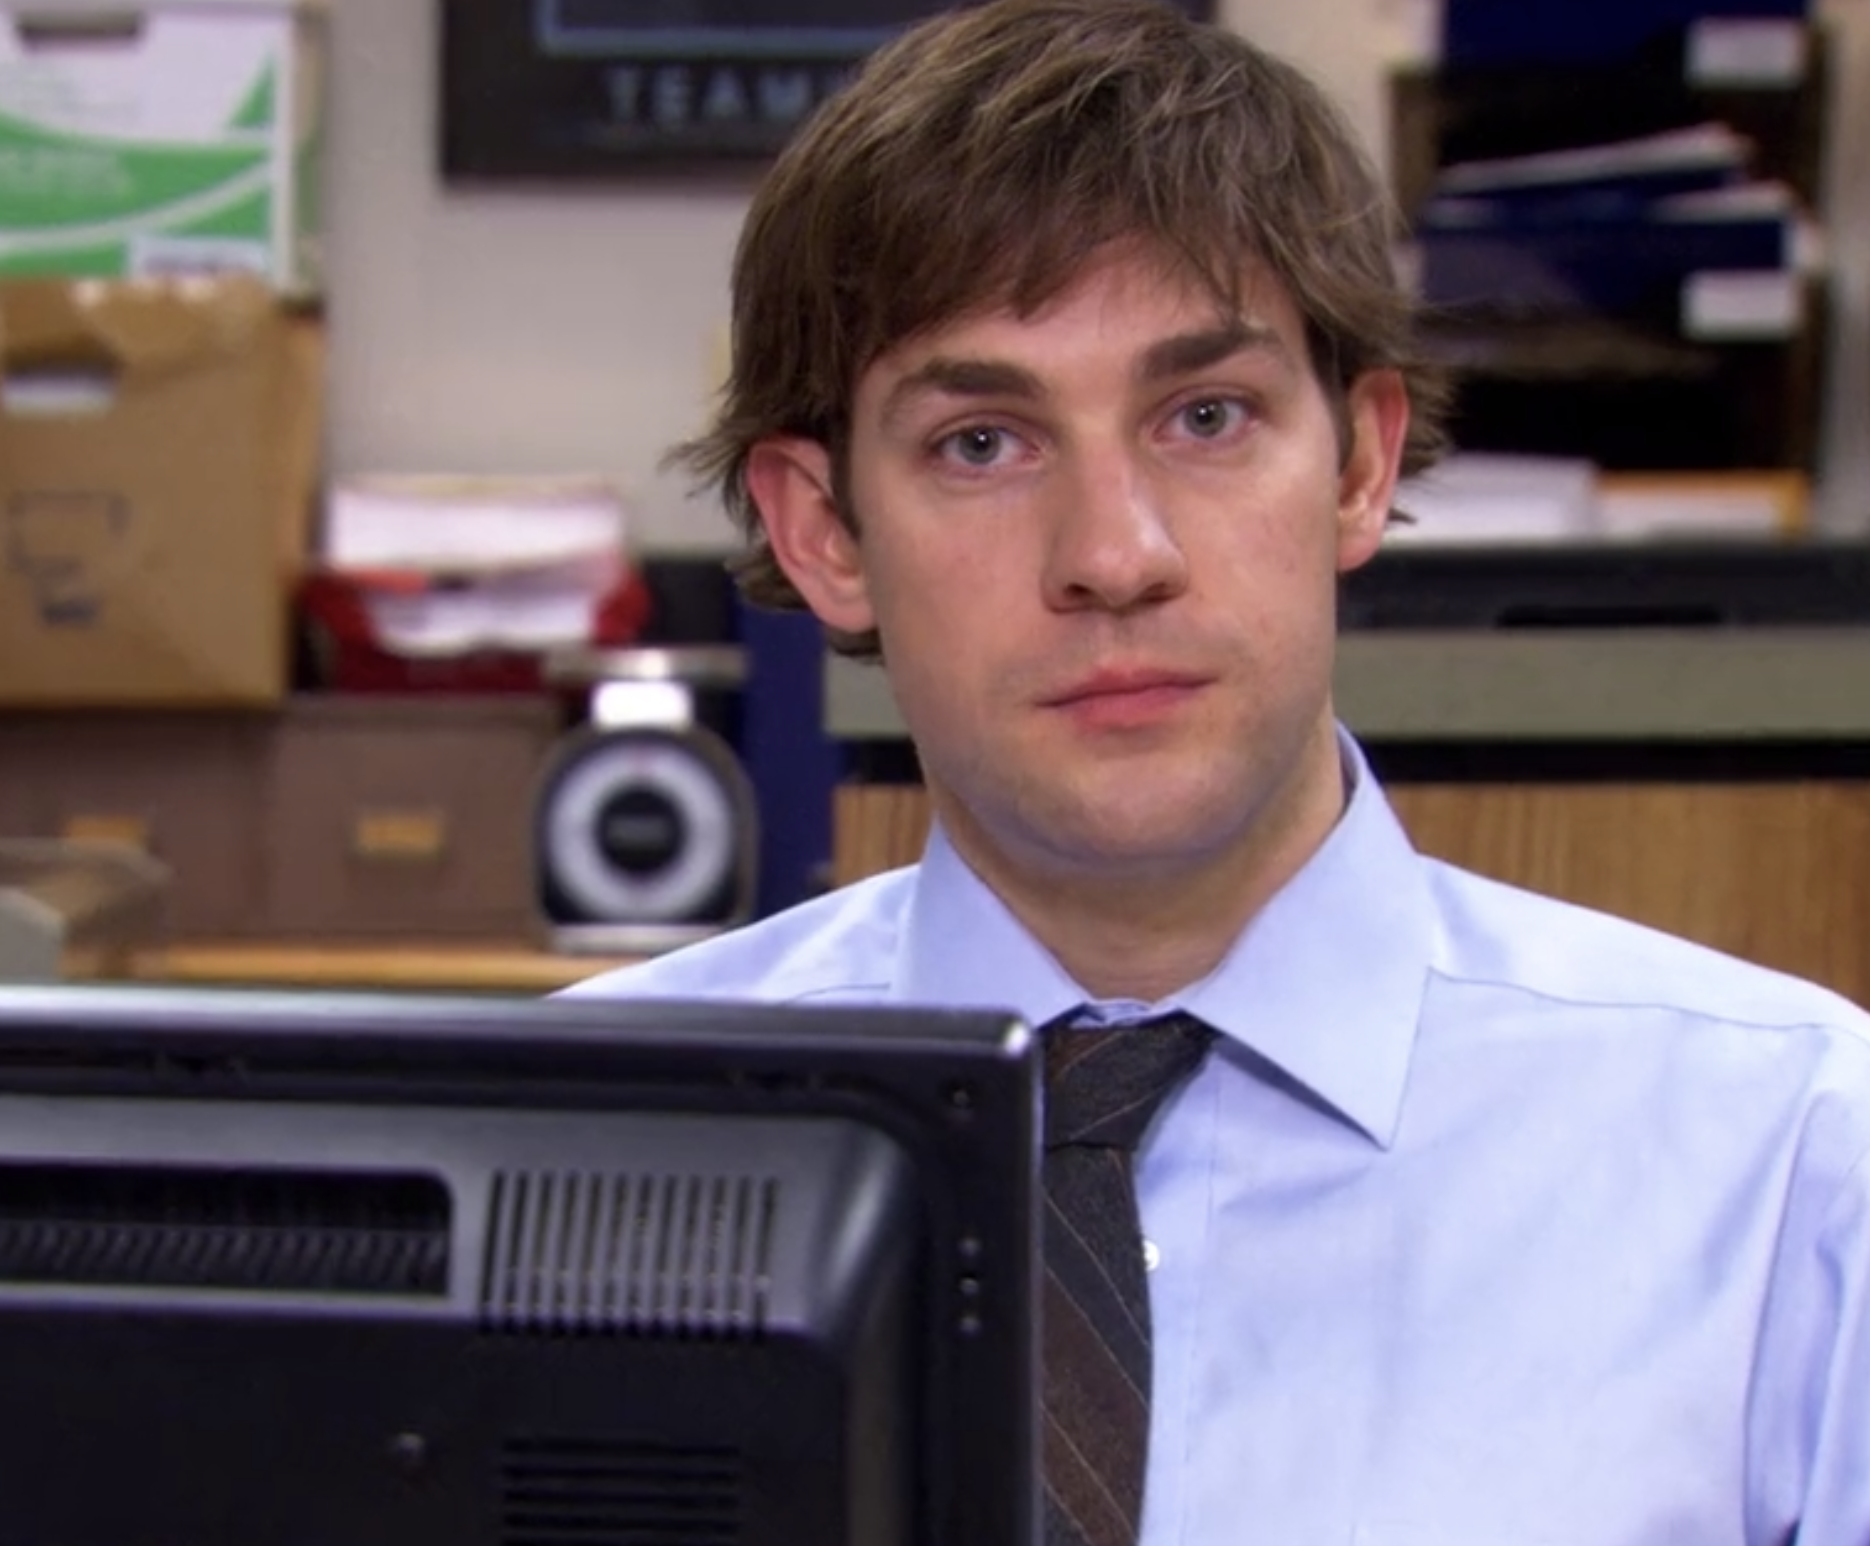 Jim looking at the camera while wearing the wig